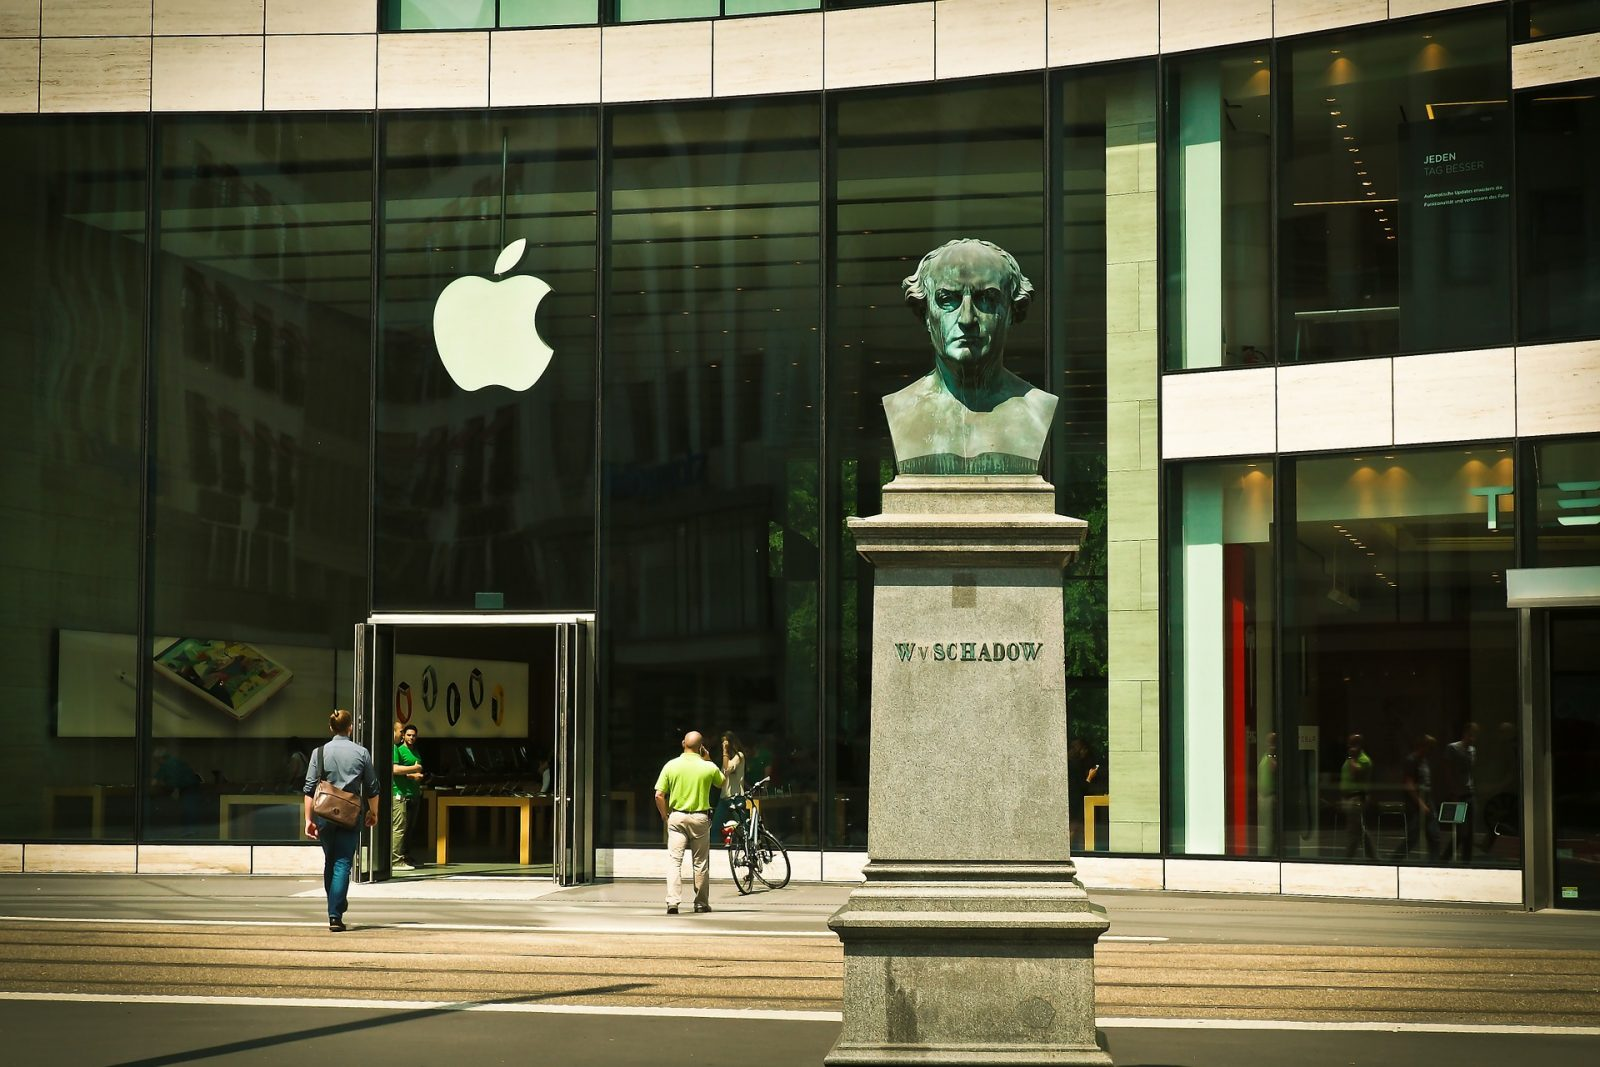 Morgan Stanley Analysts Say Apple's Stock Could Still Rise